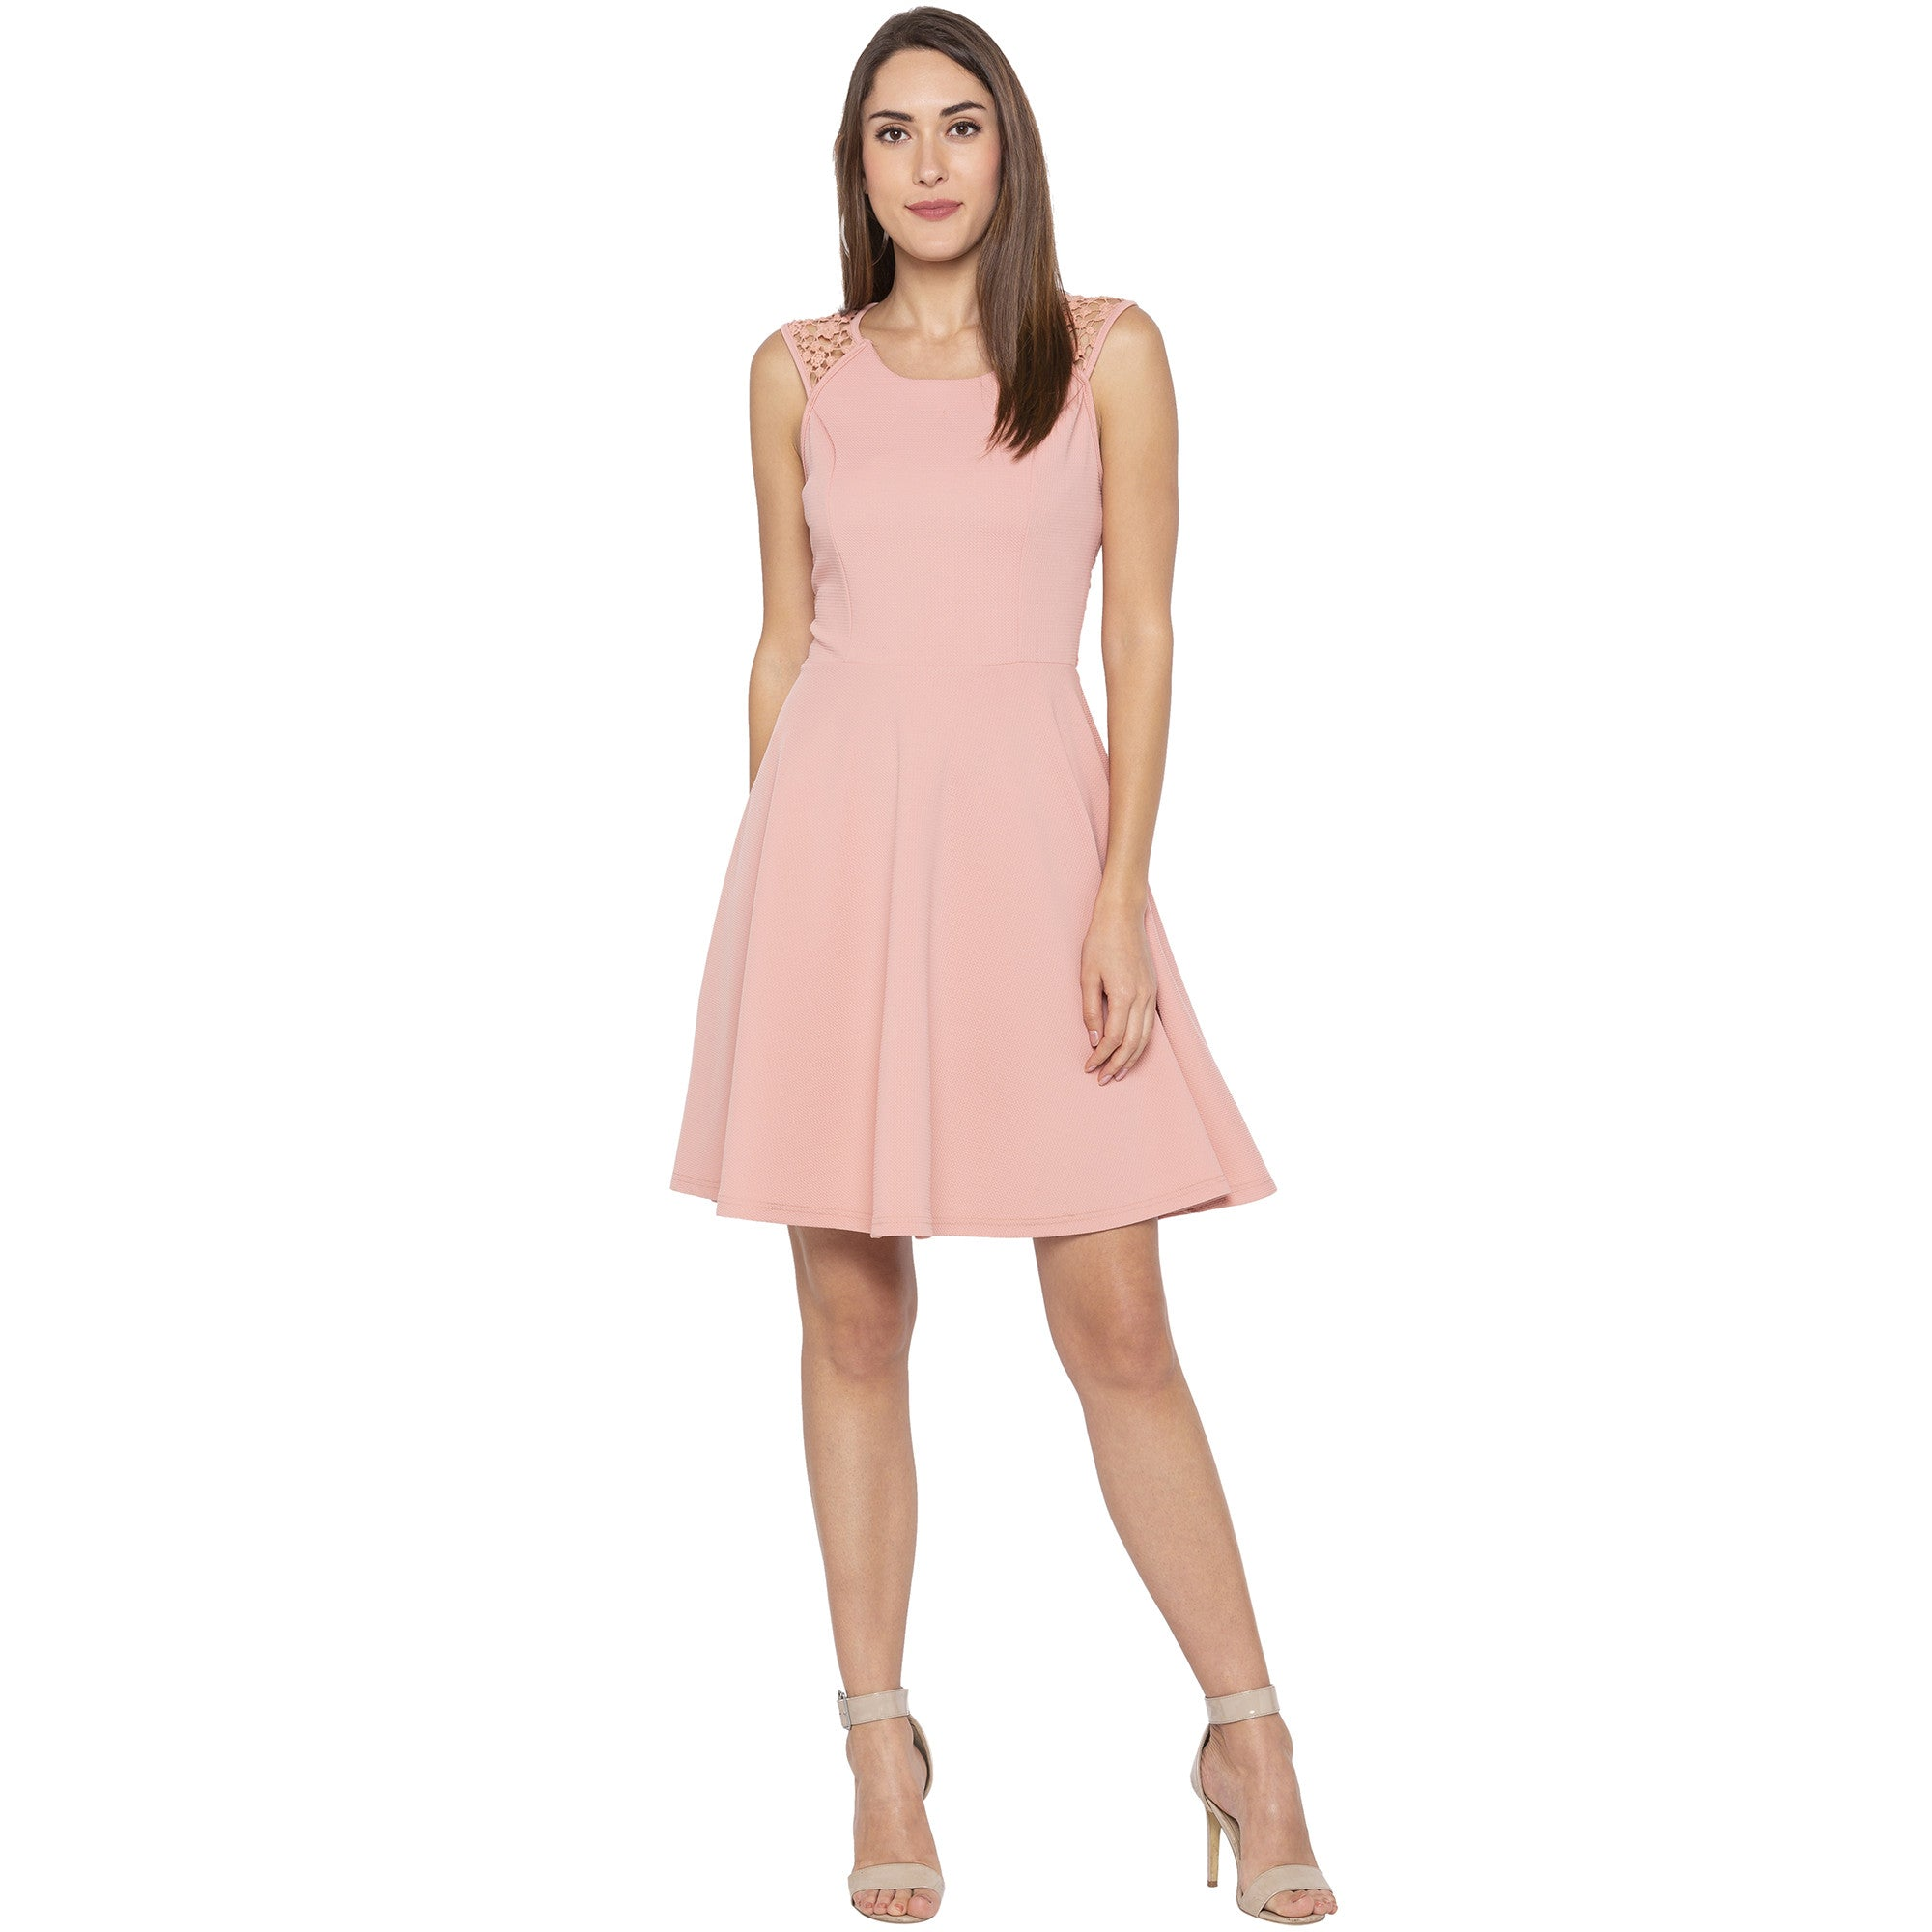 Casual Pink Color Solid Fit and Flare Dress-4